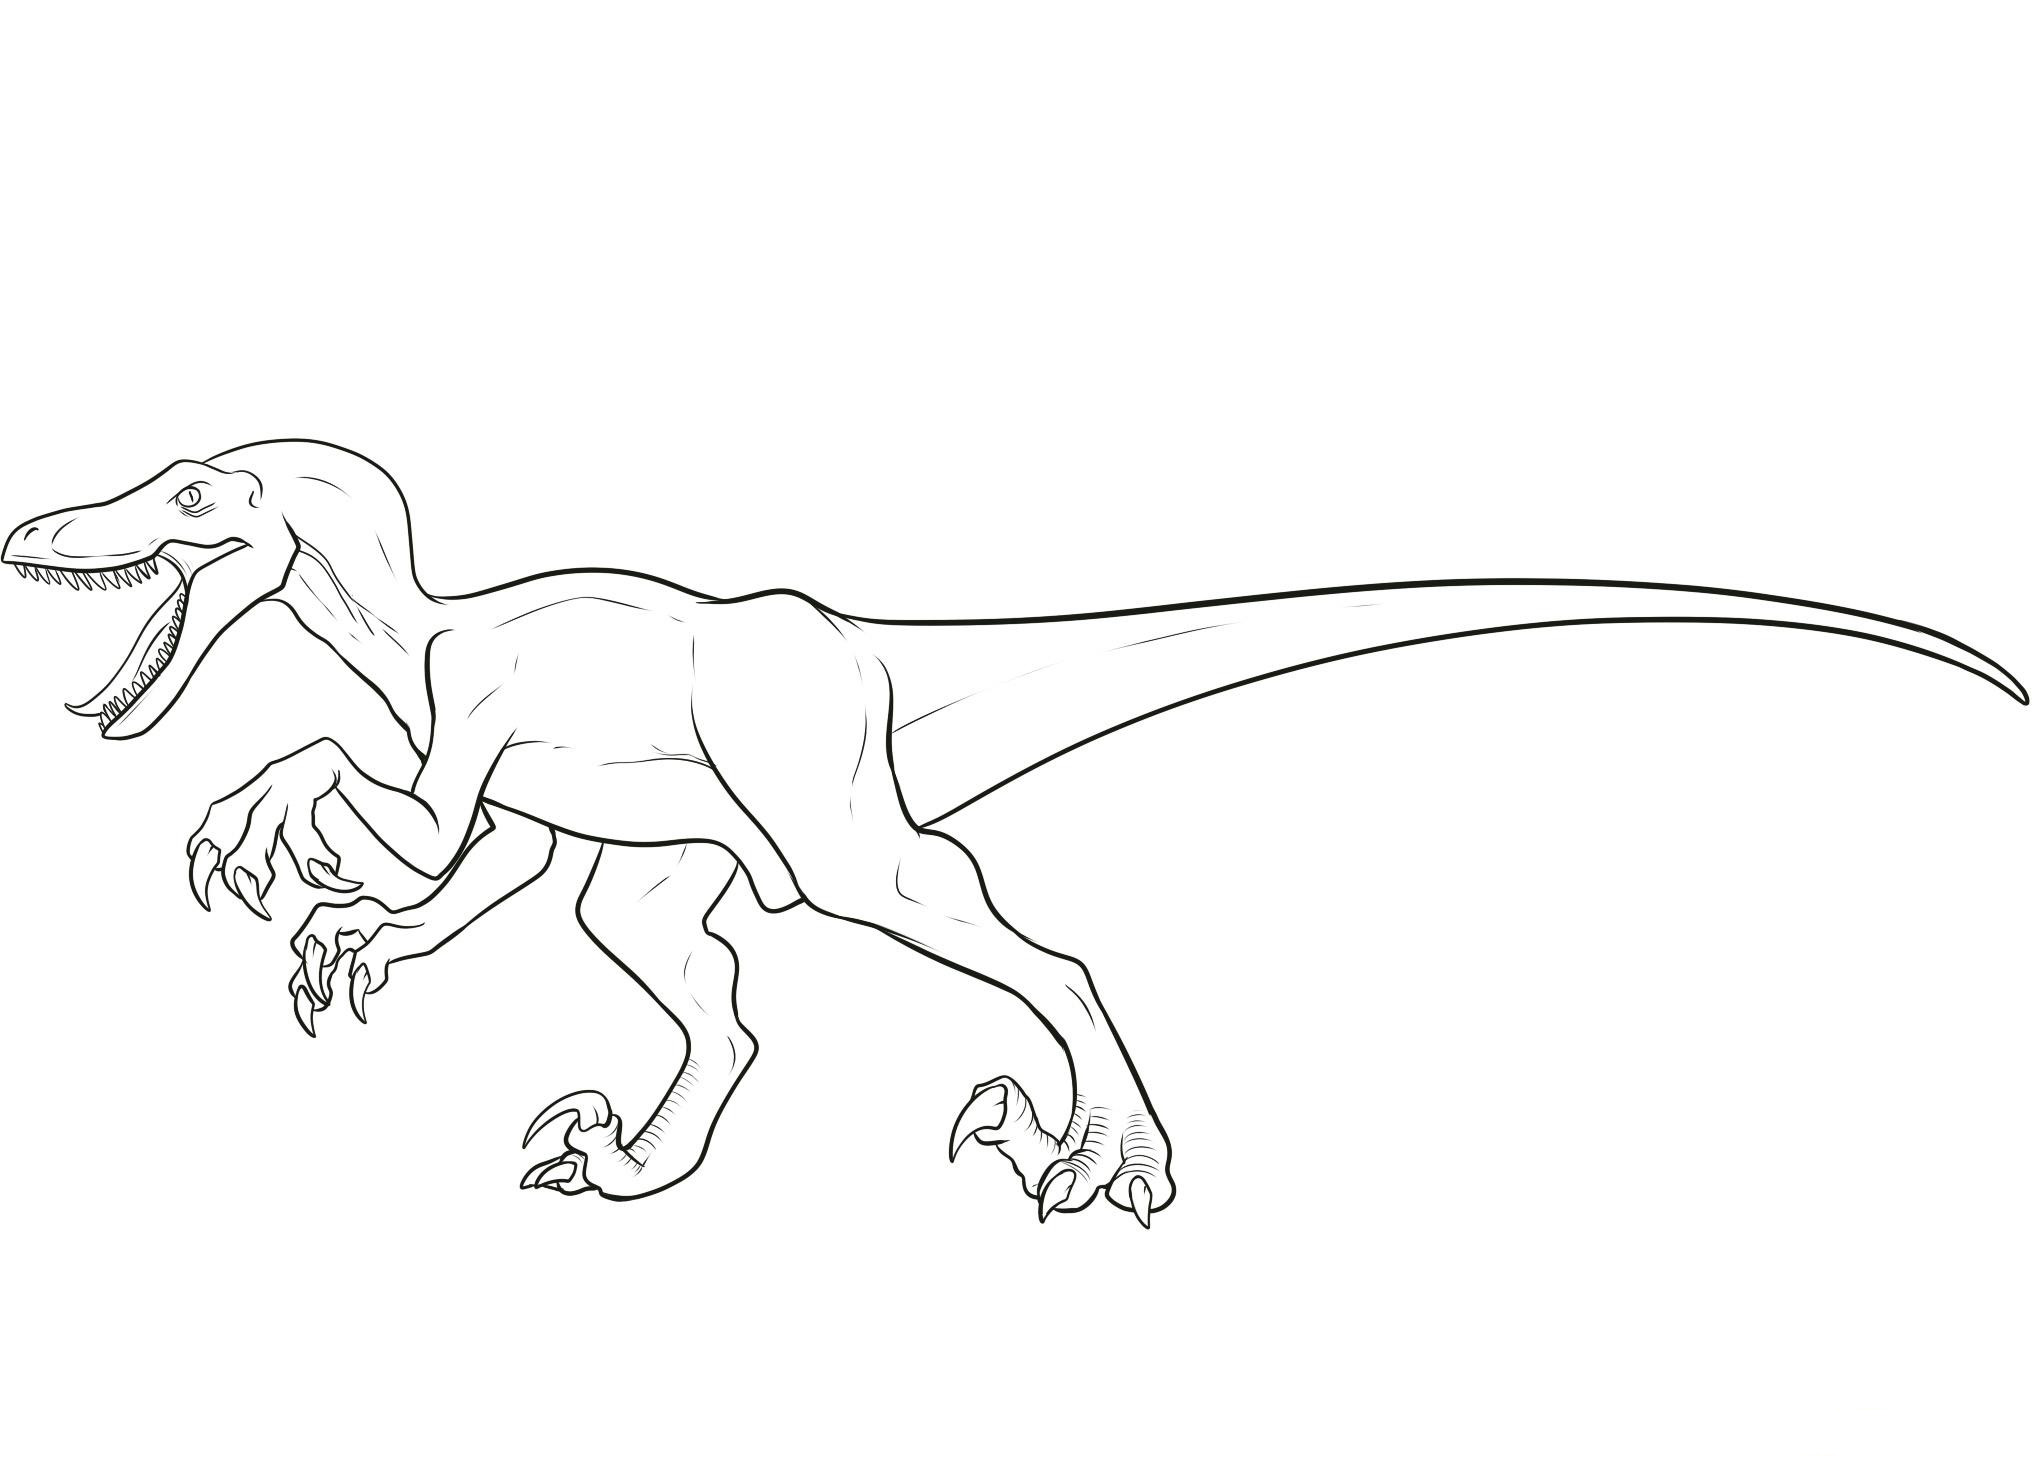 jurassic world coloring best for kids indoraptor dino glitter paint give thanks book coloring pages Indoraptor Coloring Page